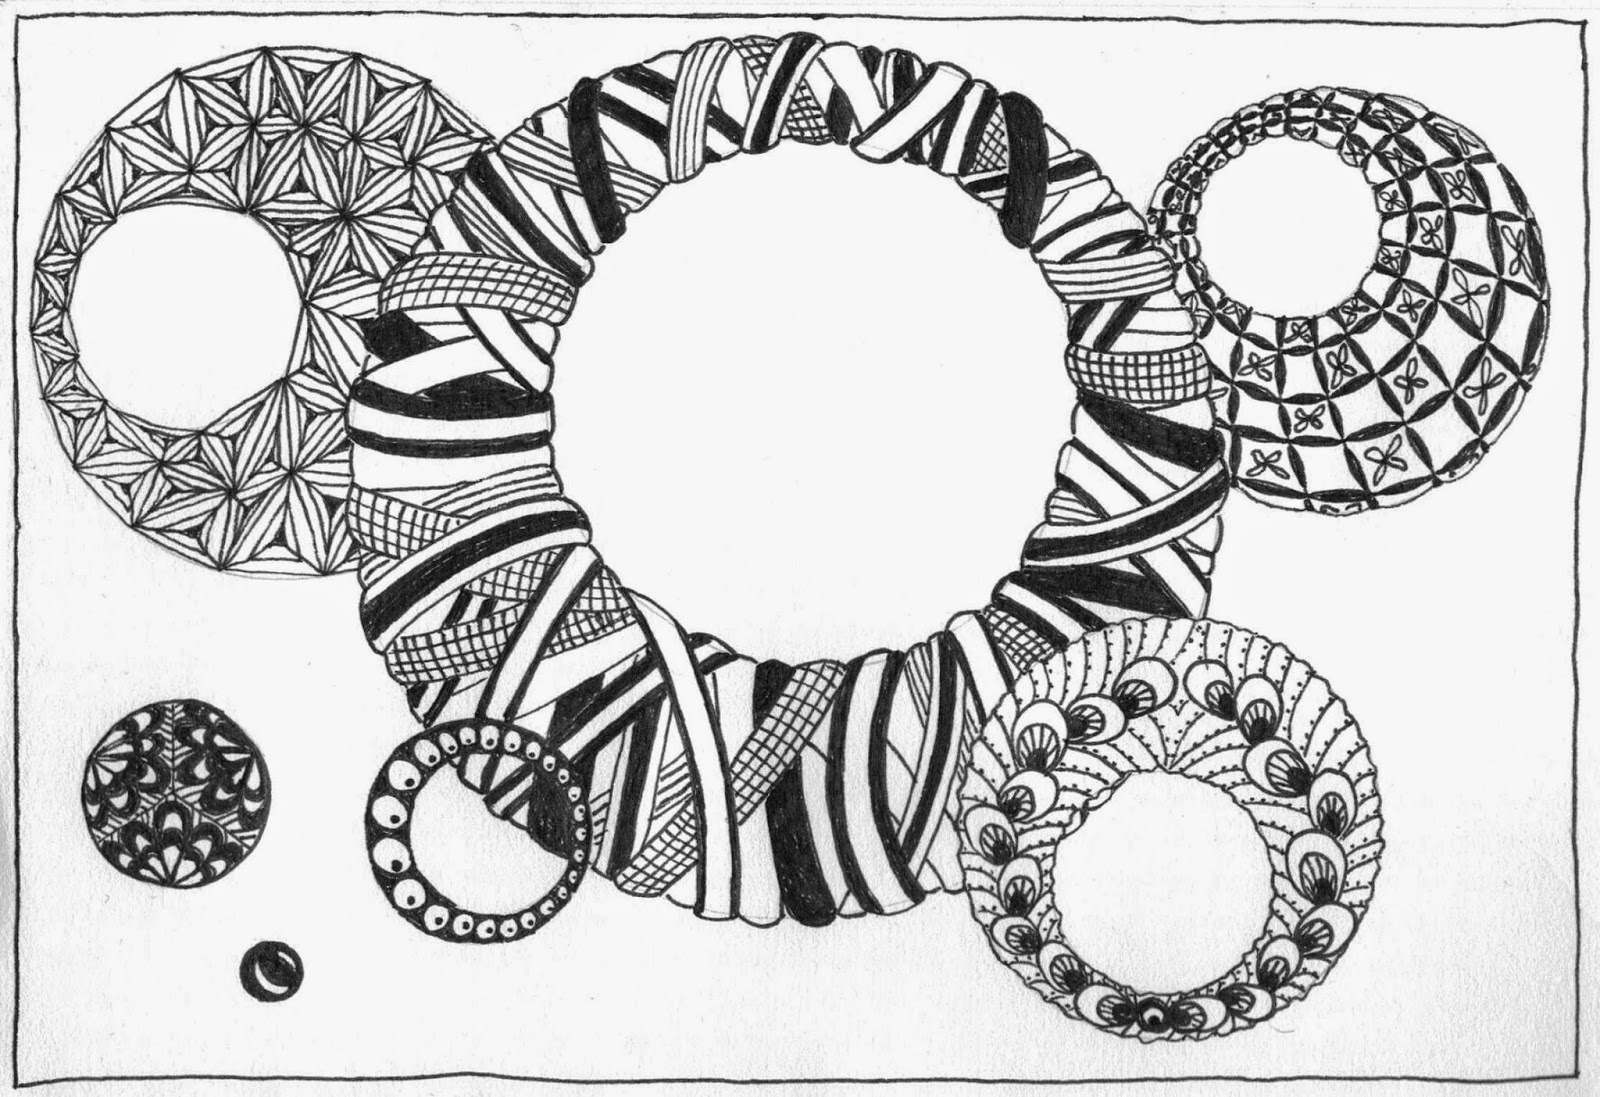 Zentangle design featuring overlapping rings